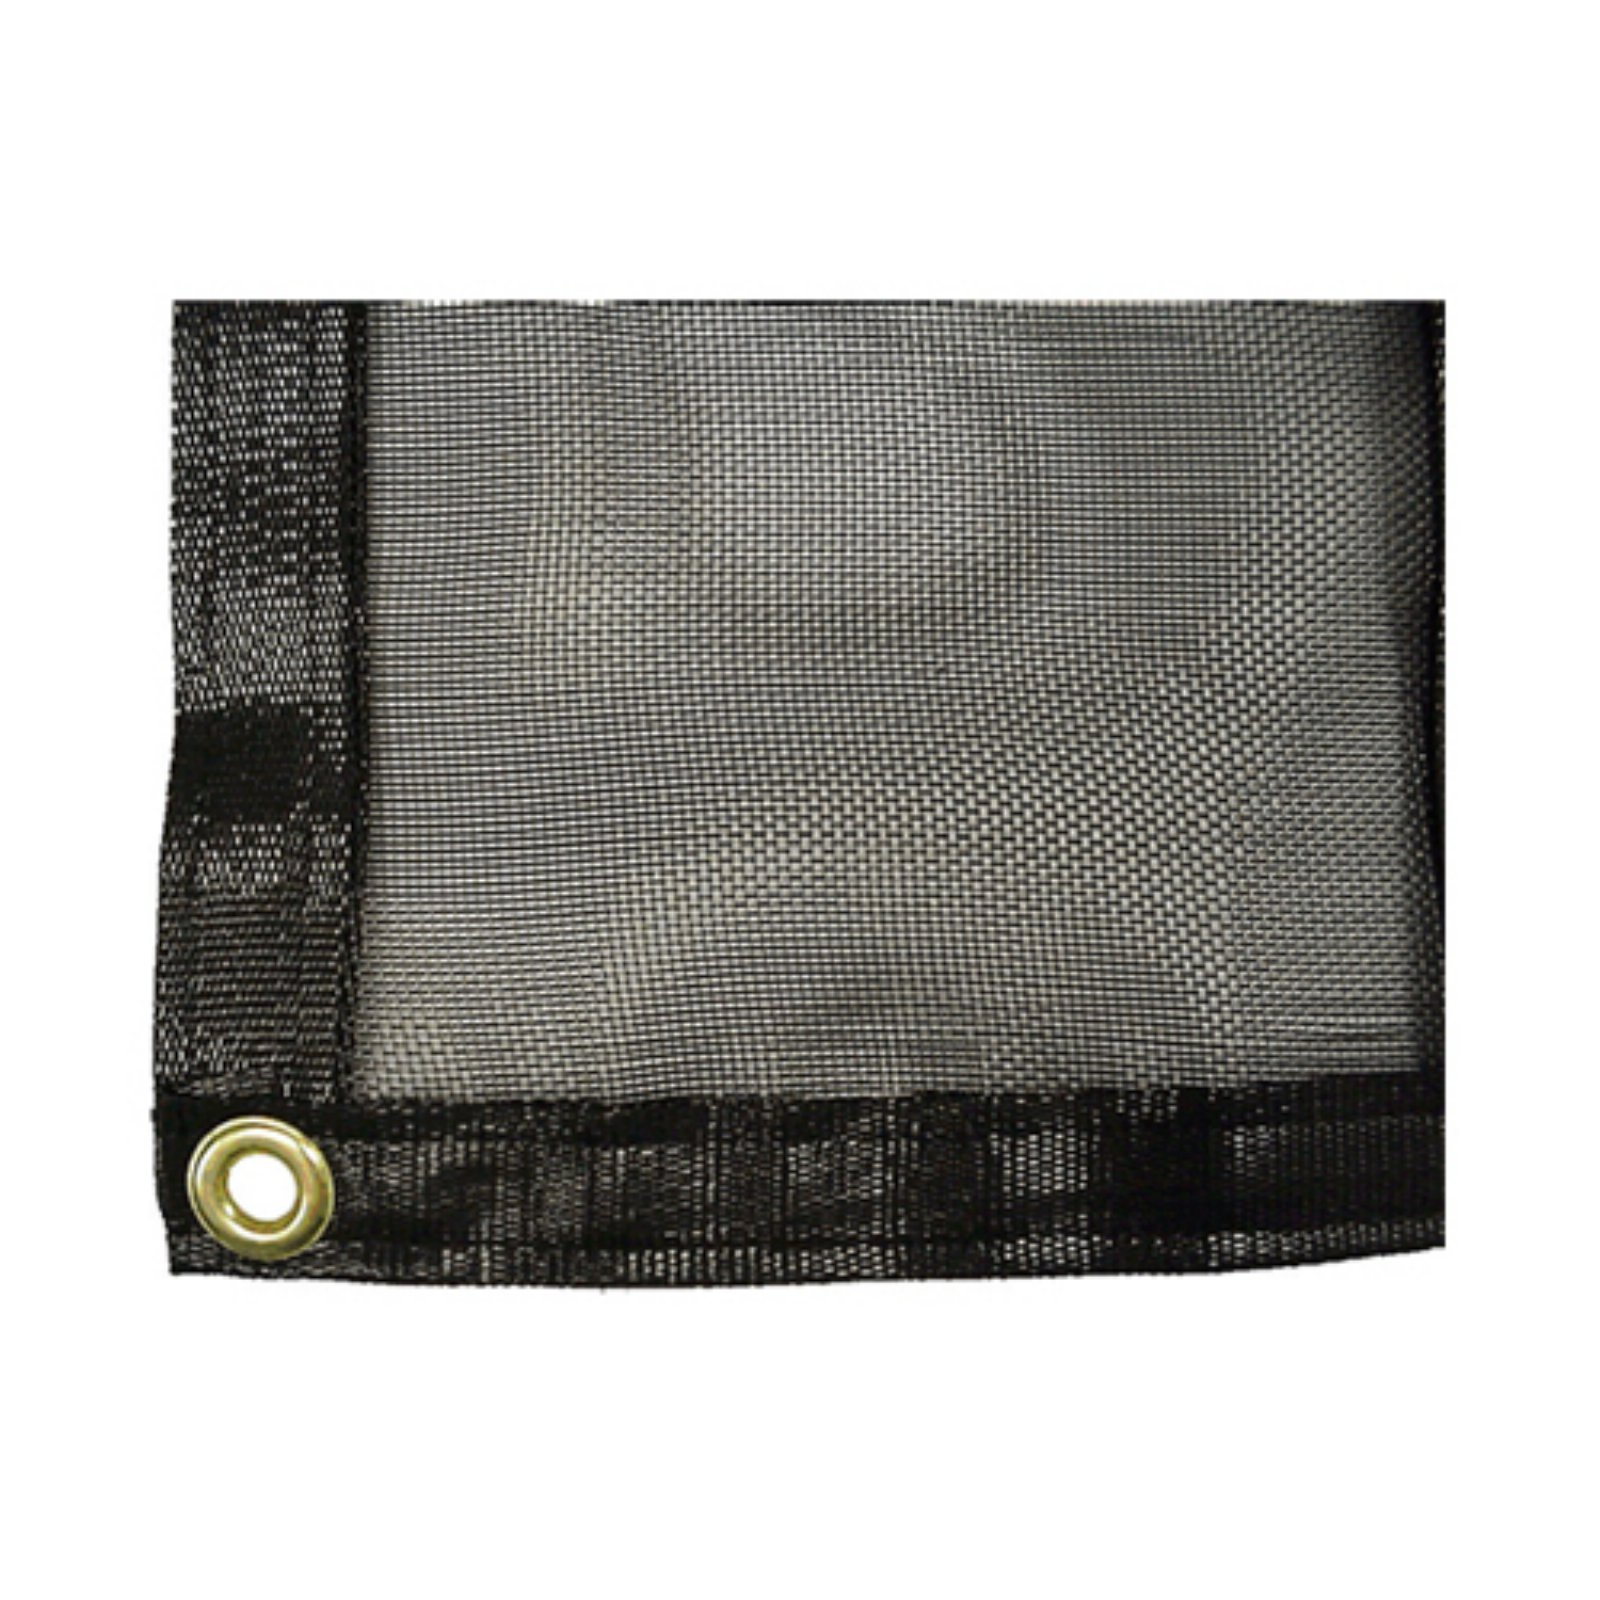 Riverstone Shade Cloth System with Corner Grommets - 6 x 10 ft.